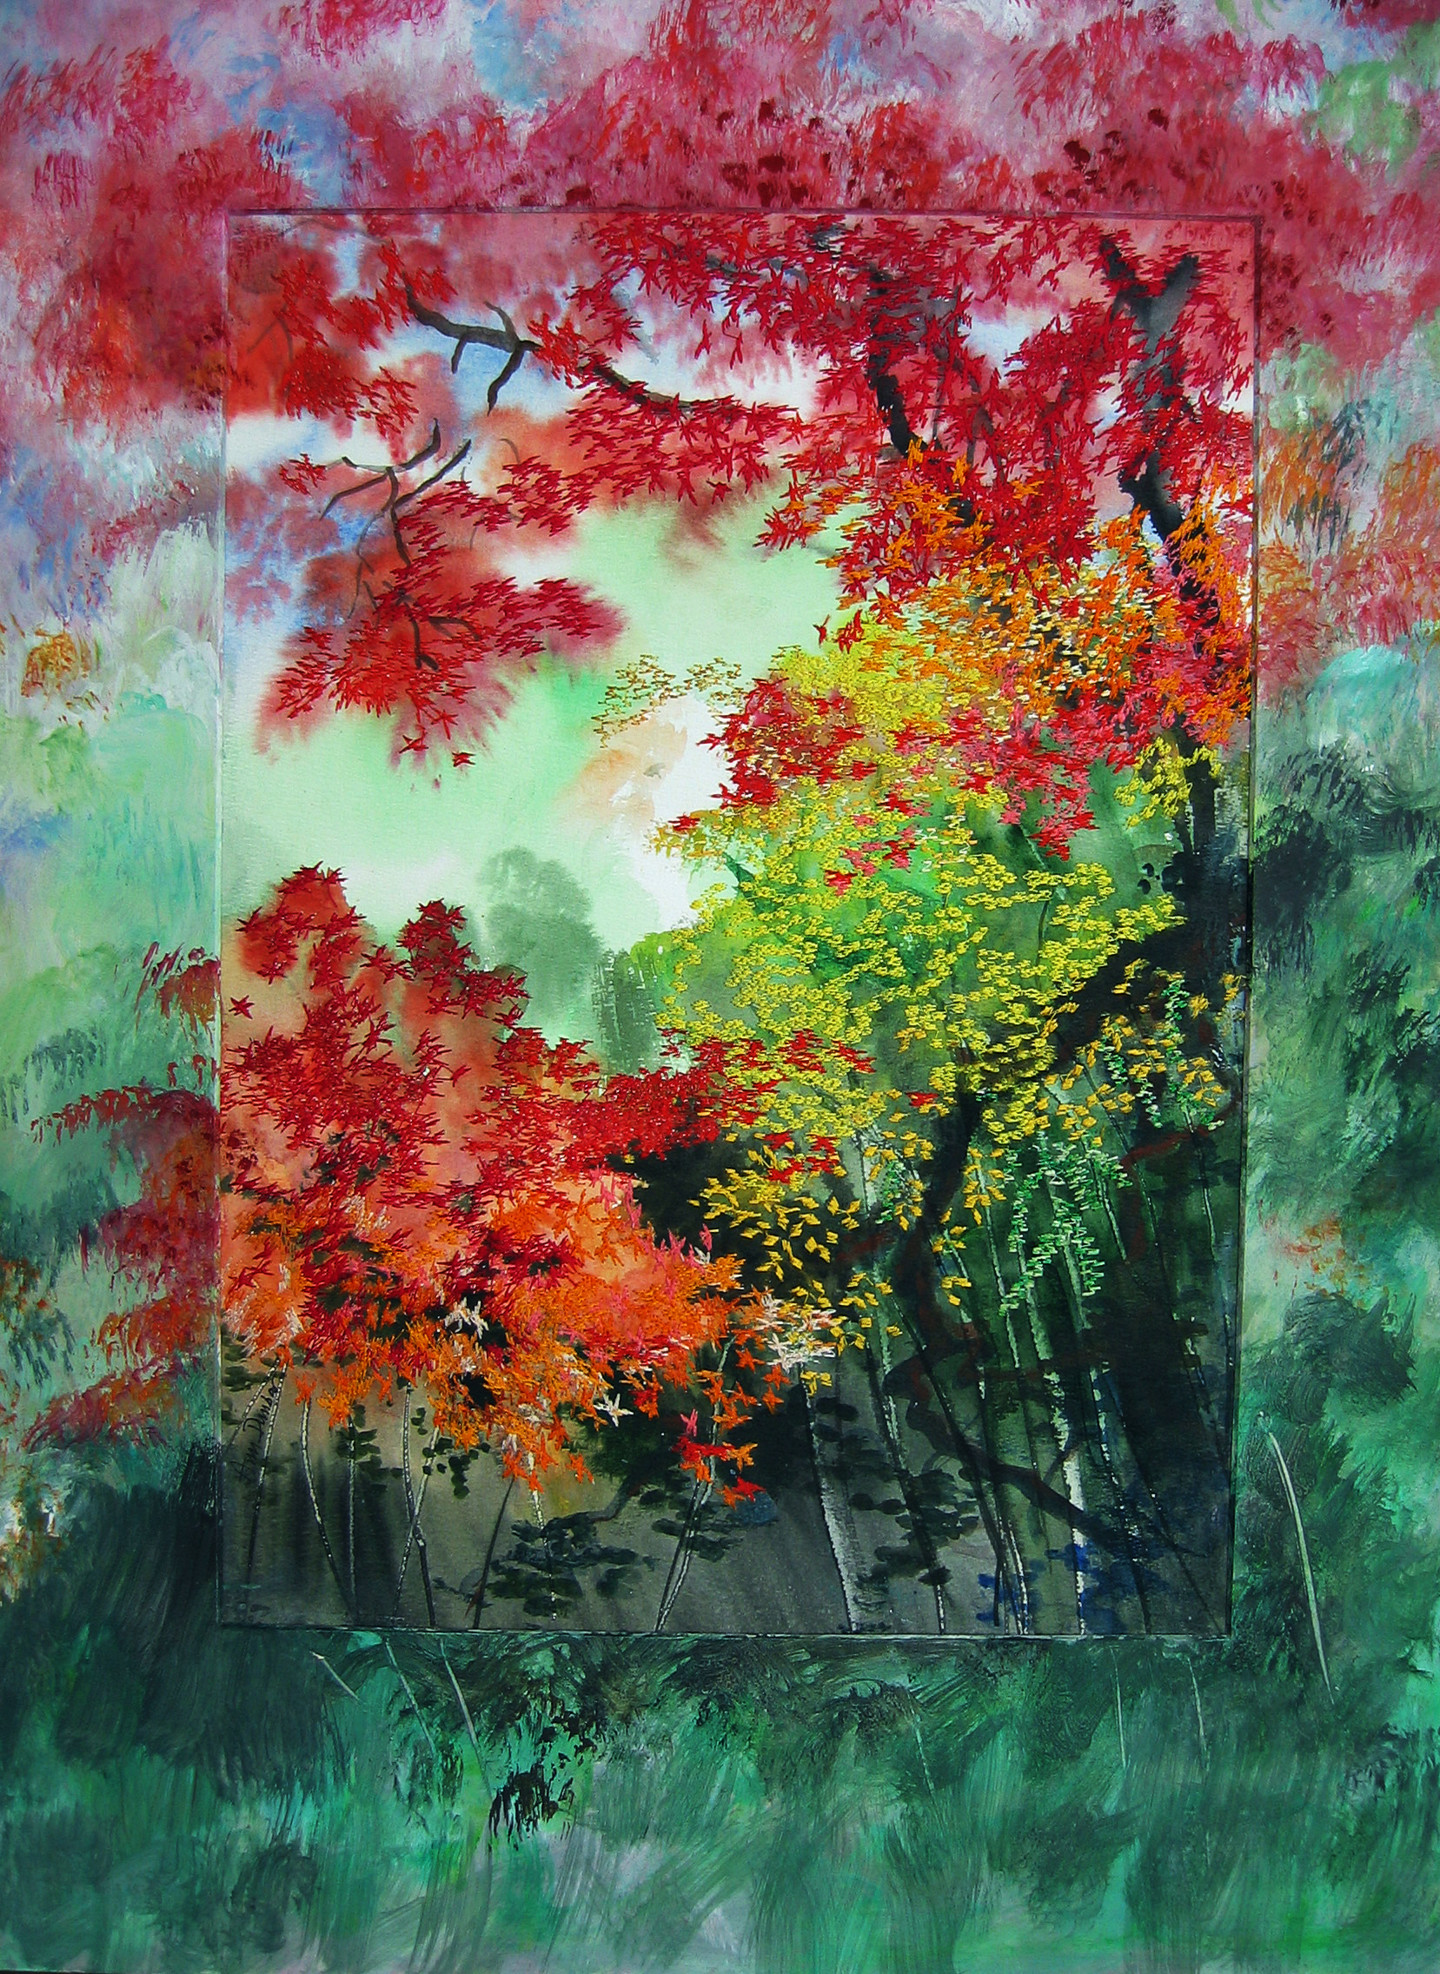 Ann Dunbar - Filtering light through the maples